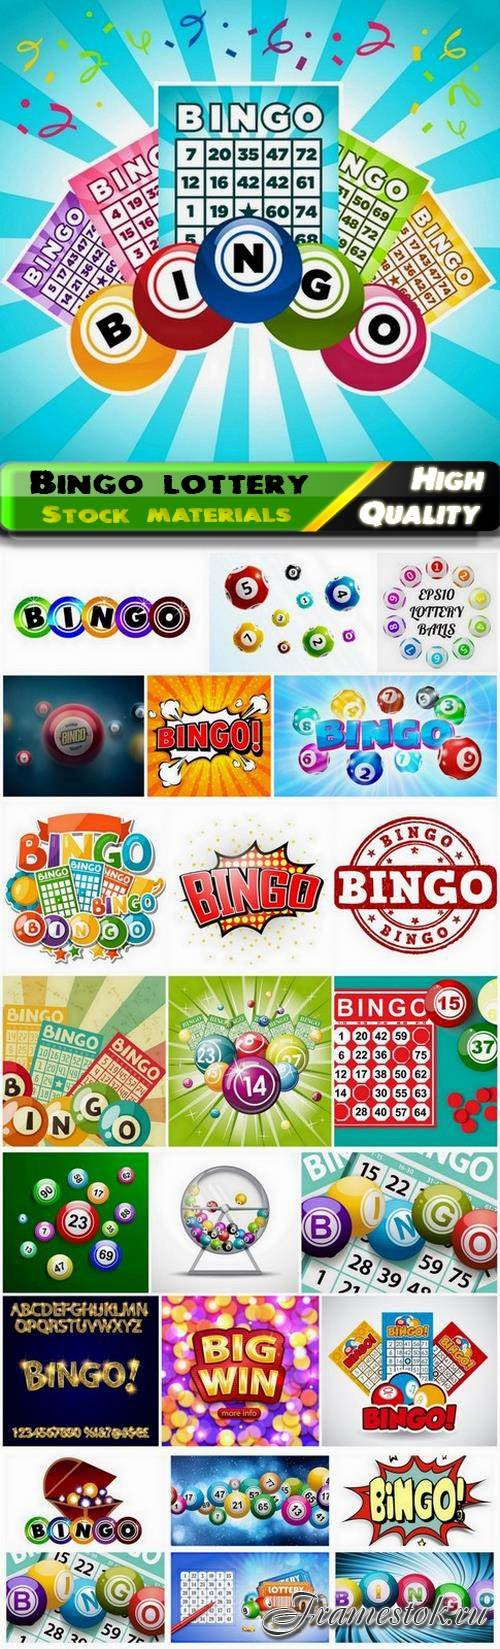 Bingo lottery game with ticket and balls with numbers 25 Eps